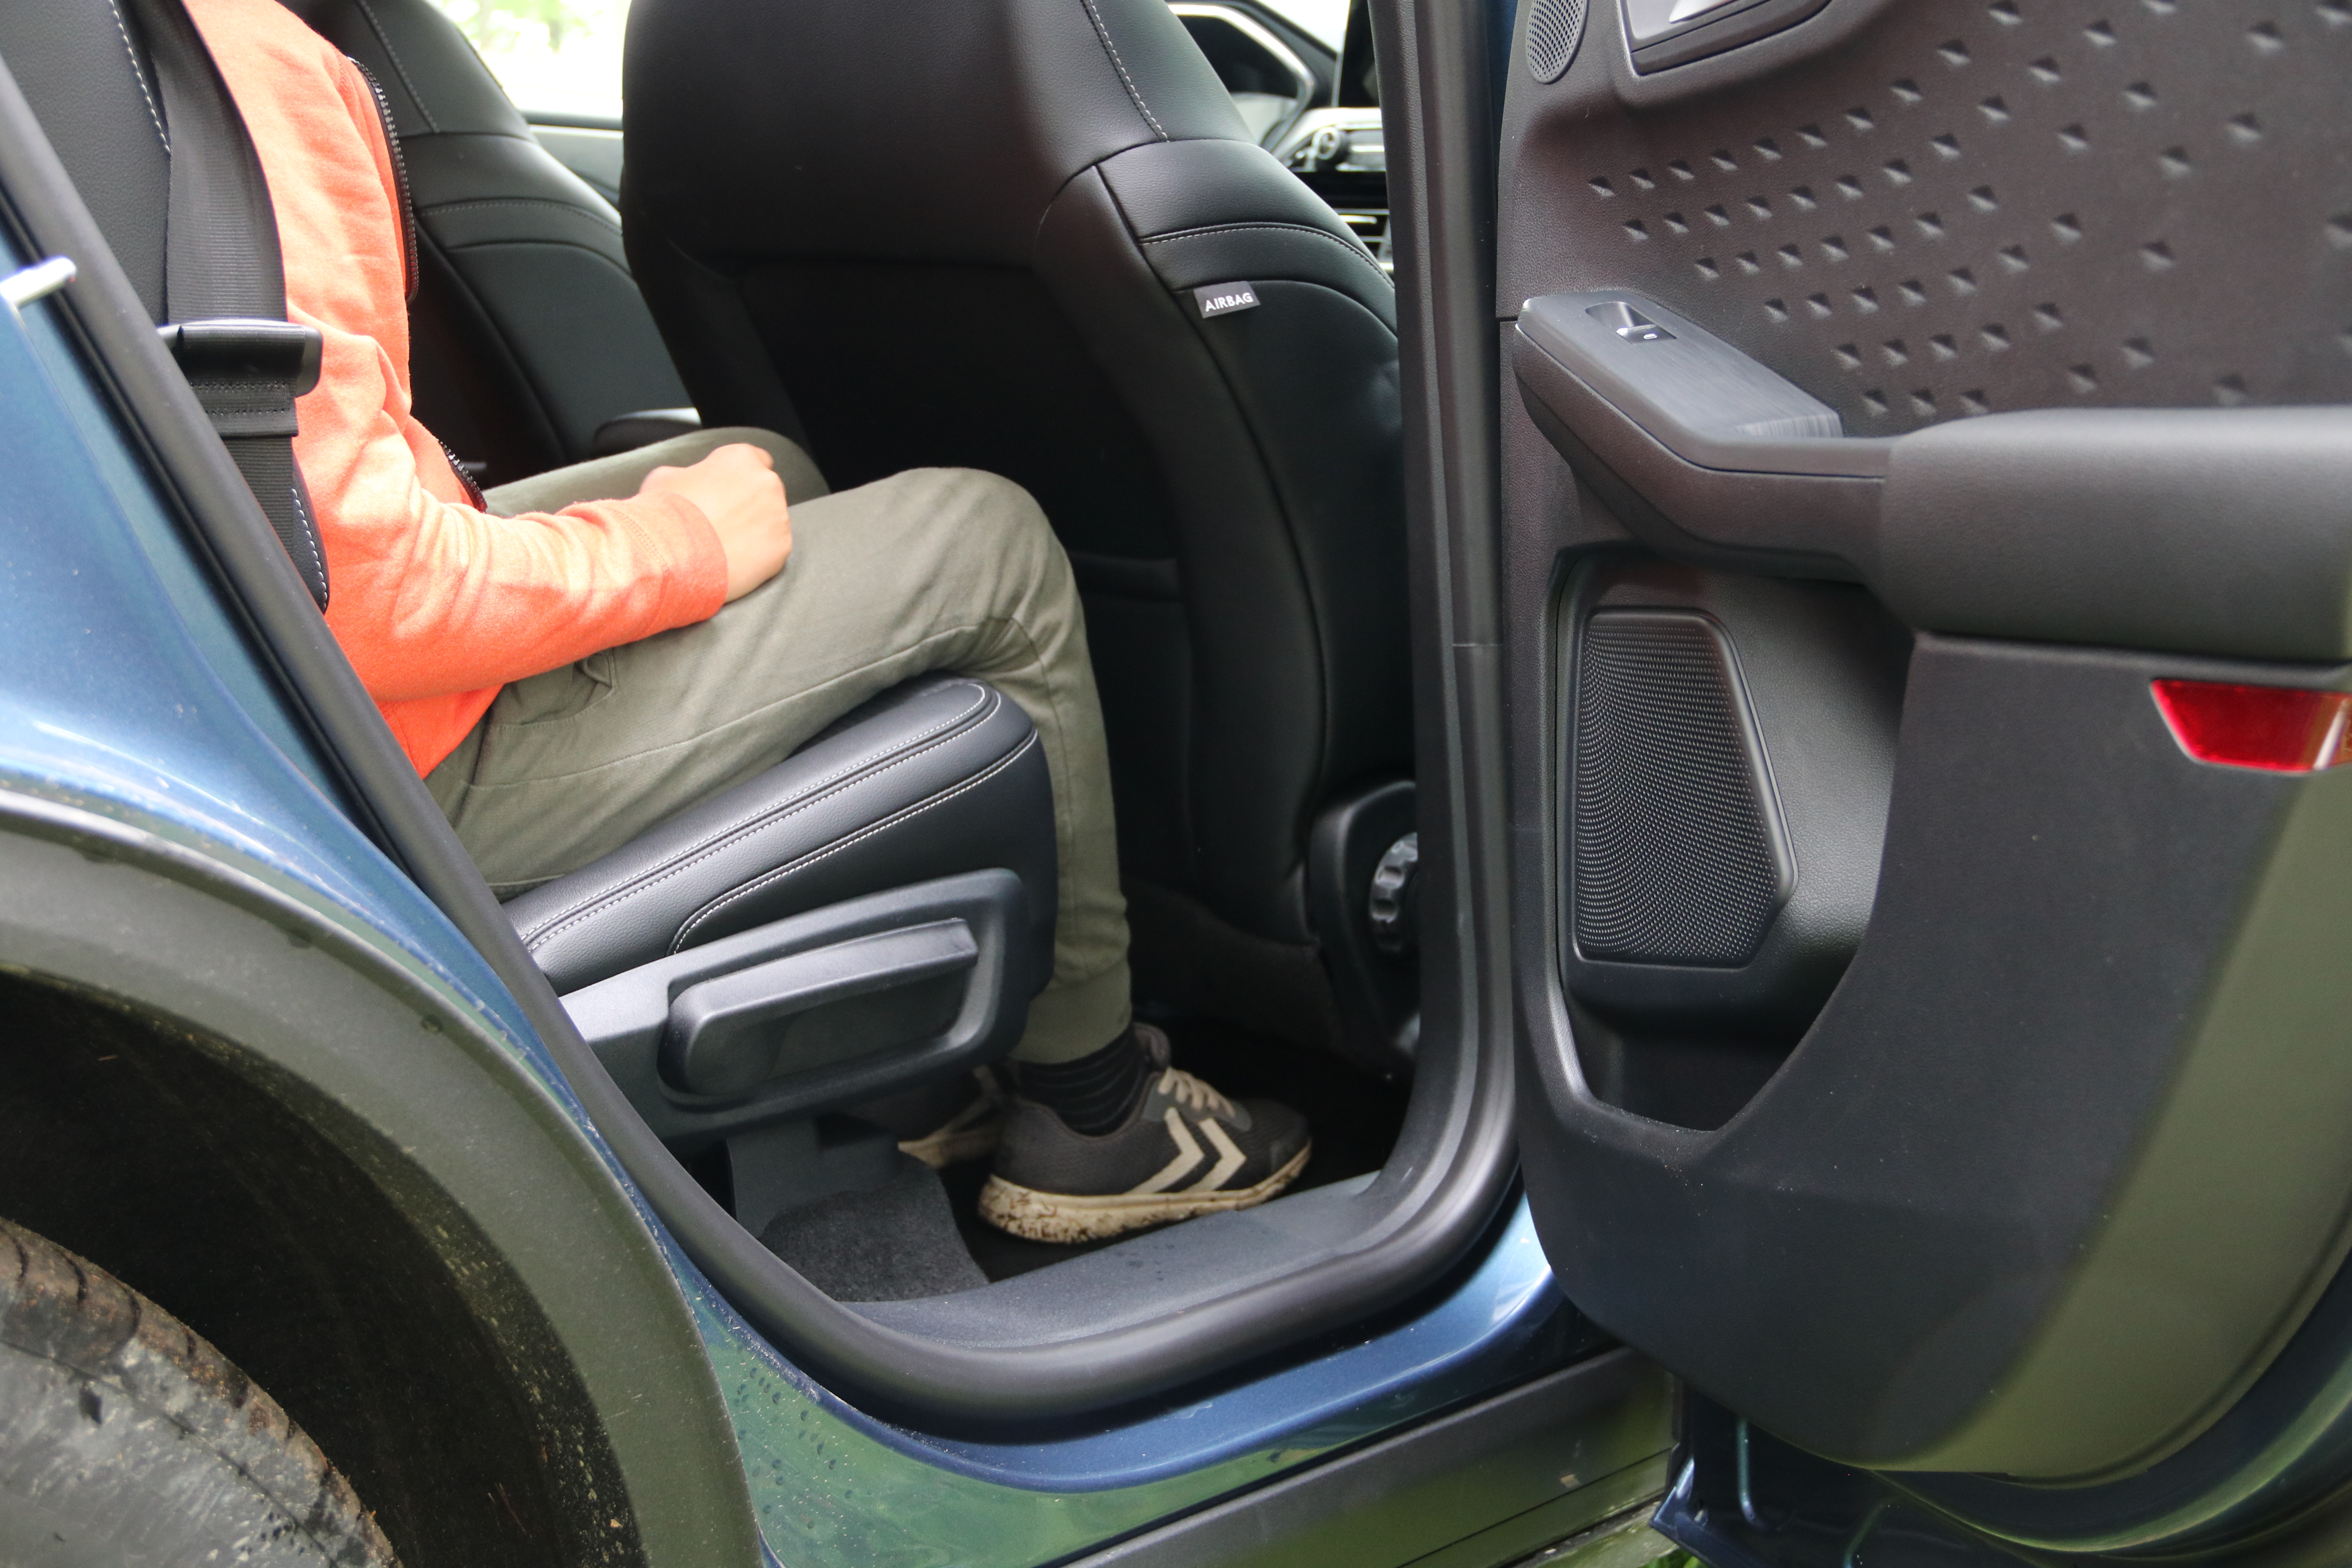 Kuga PHEV leg room when back seats are moved front